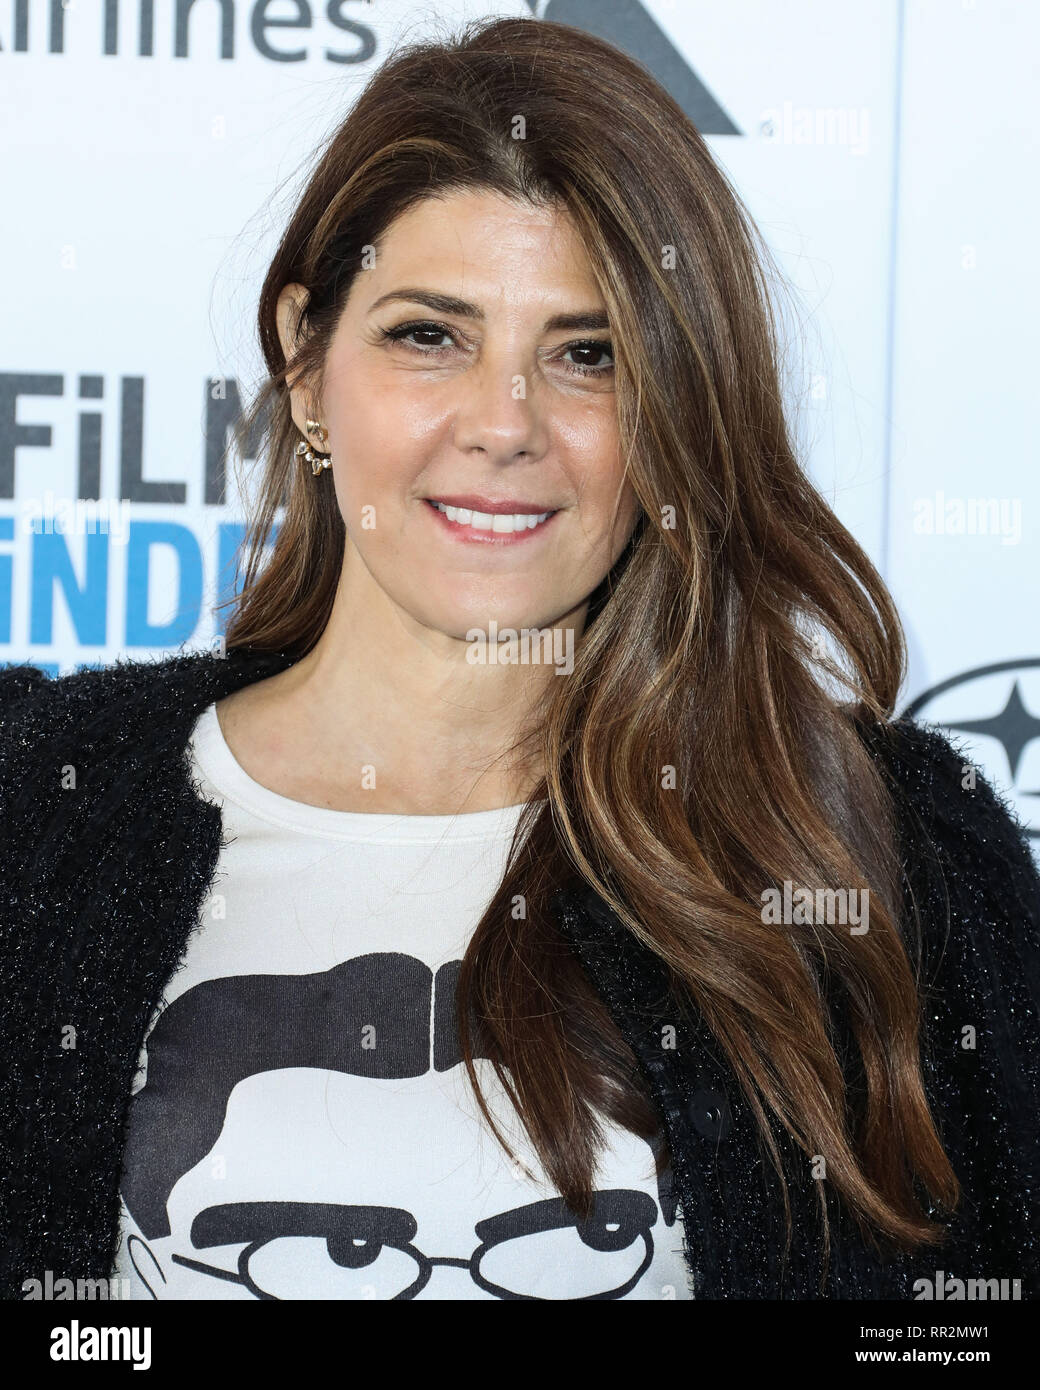 SANTA MONICA, LOS ANGELES, CA, USA - FEBRUARY 23: Actress Marisa Tomei arrives at the 2019 Film Independent Spirit Awards held at the Santa Monica Beach on February 23, 2019 in Santa Monica, Los Angeles, California, United States. (Photo by Xavier Collin/Image Press Agency) - Stock Image